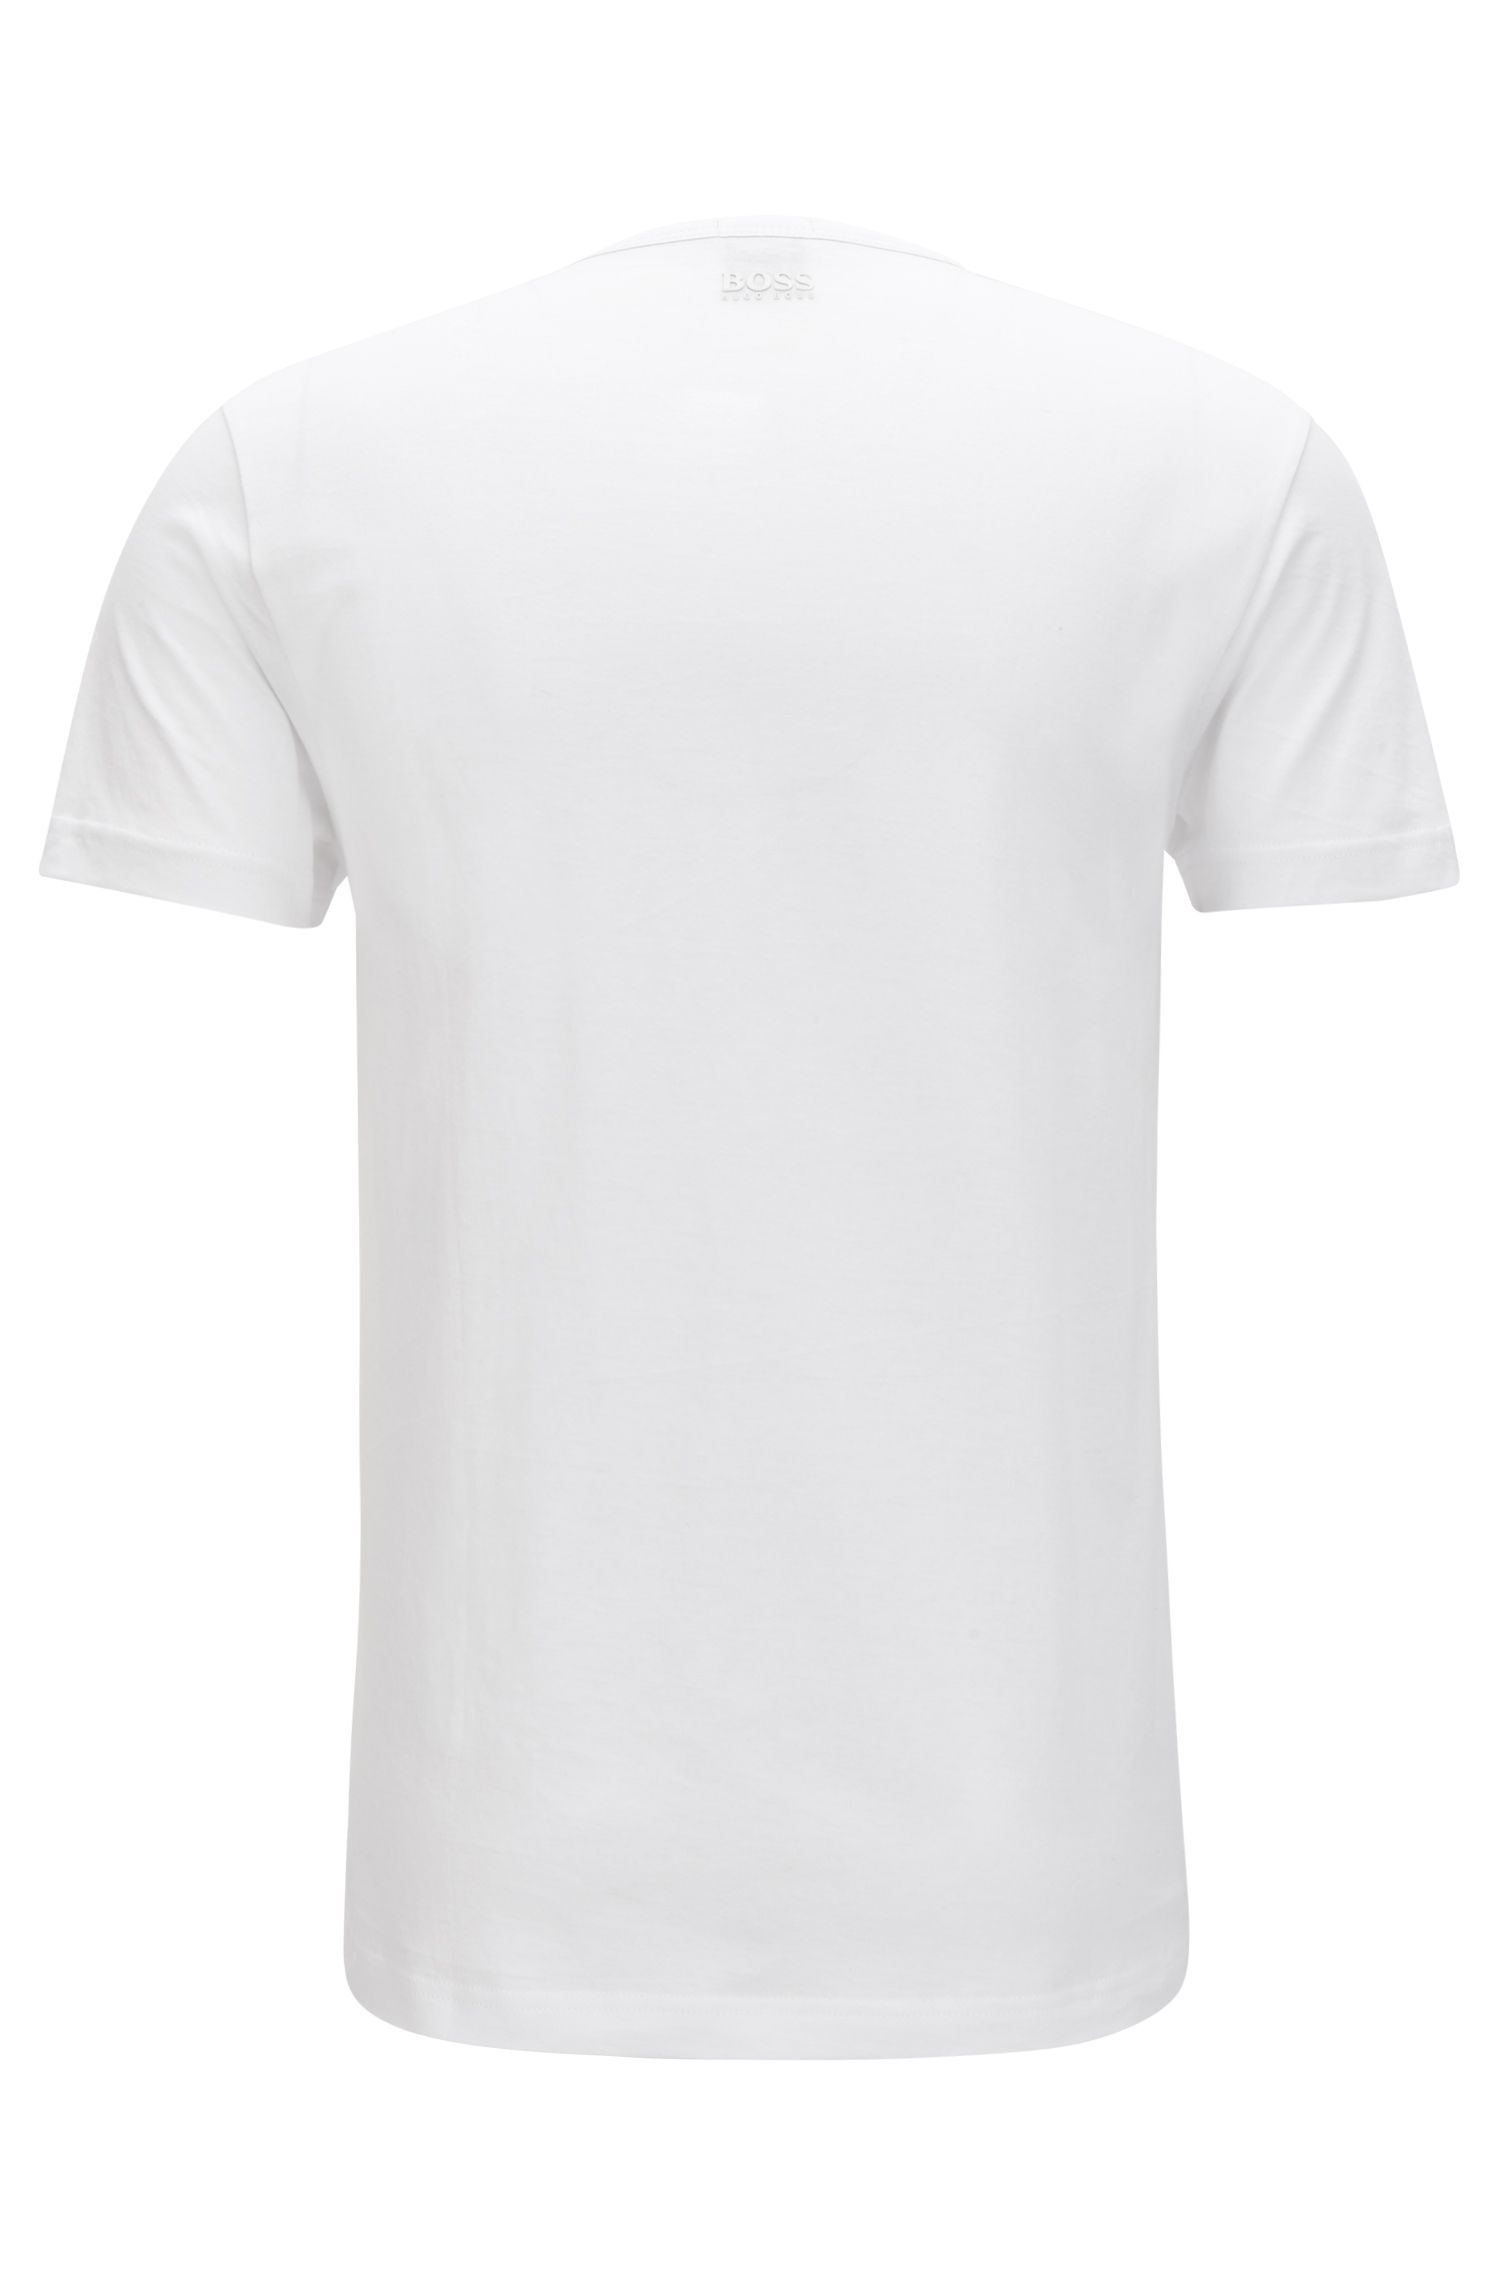 Short-sleeved cotton T-shirt with three-dimensional logo